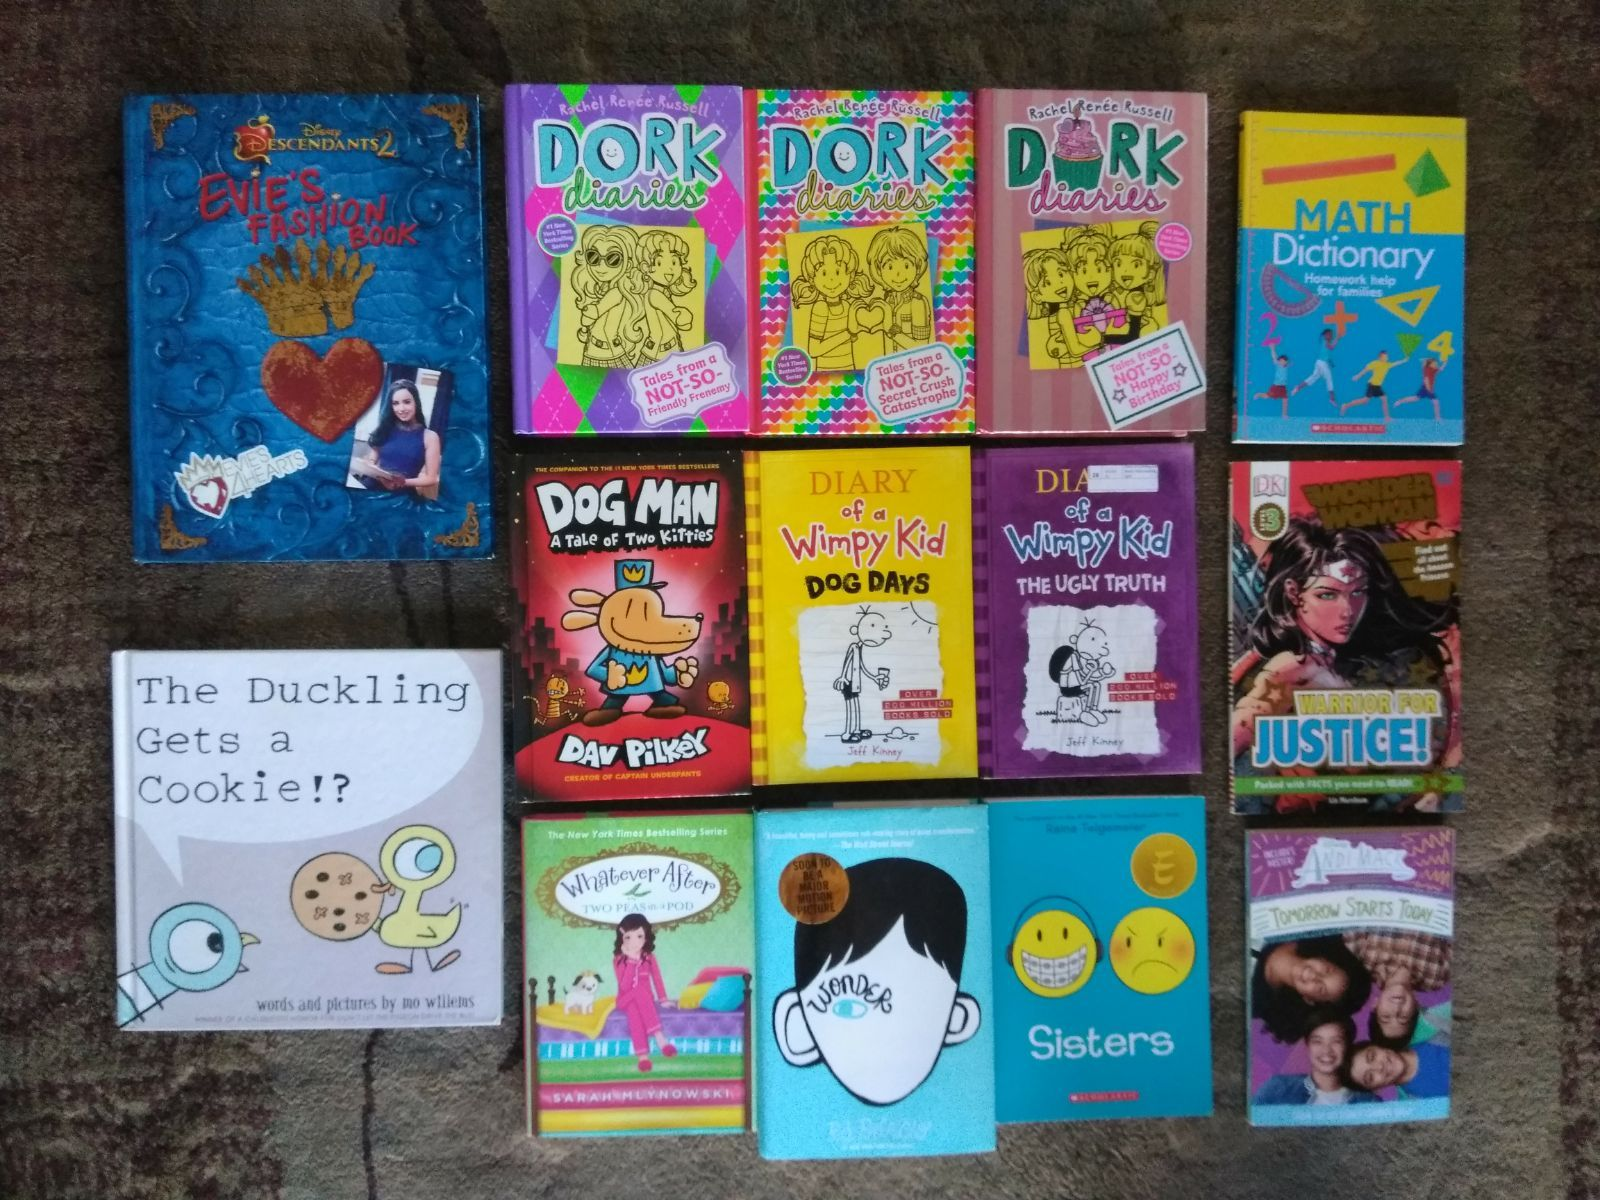 Children Books Dork Diaries 11 13 Dog Man Diary Of A Wimpy Kid Disney More Lot Of 14 See Pictures If You Ca Dork Diaries Wimpy Kid Dork Diaries Books